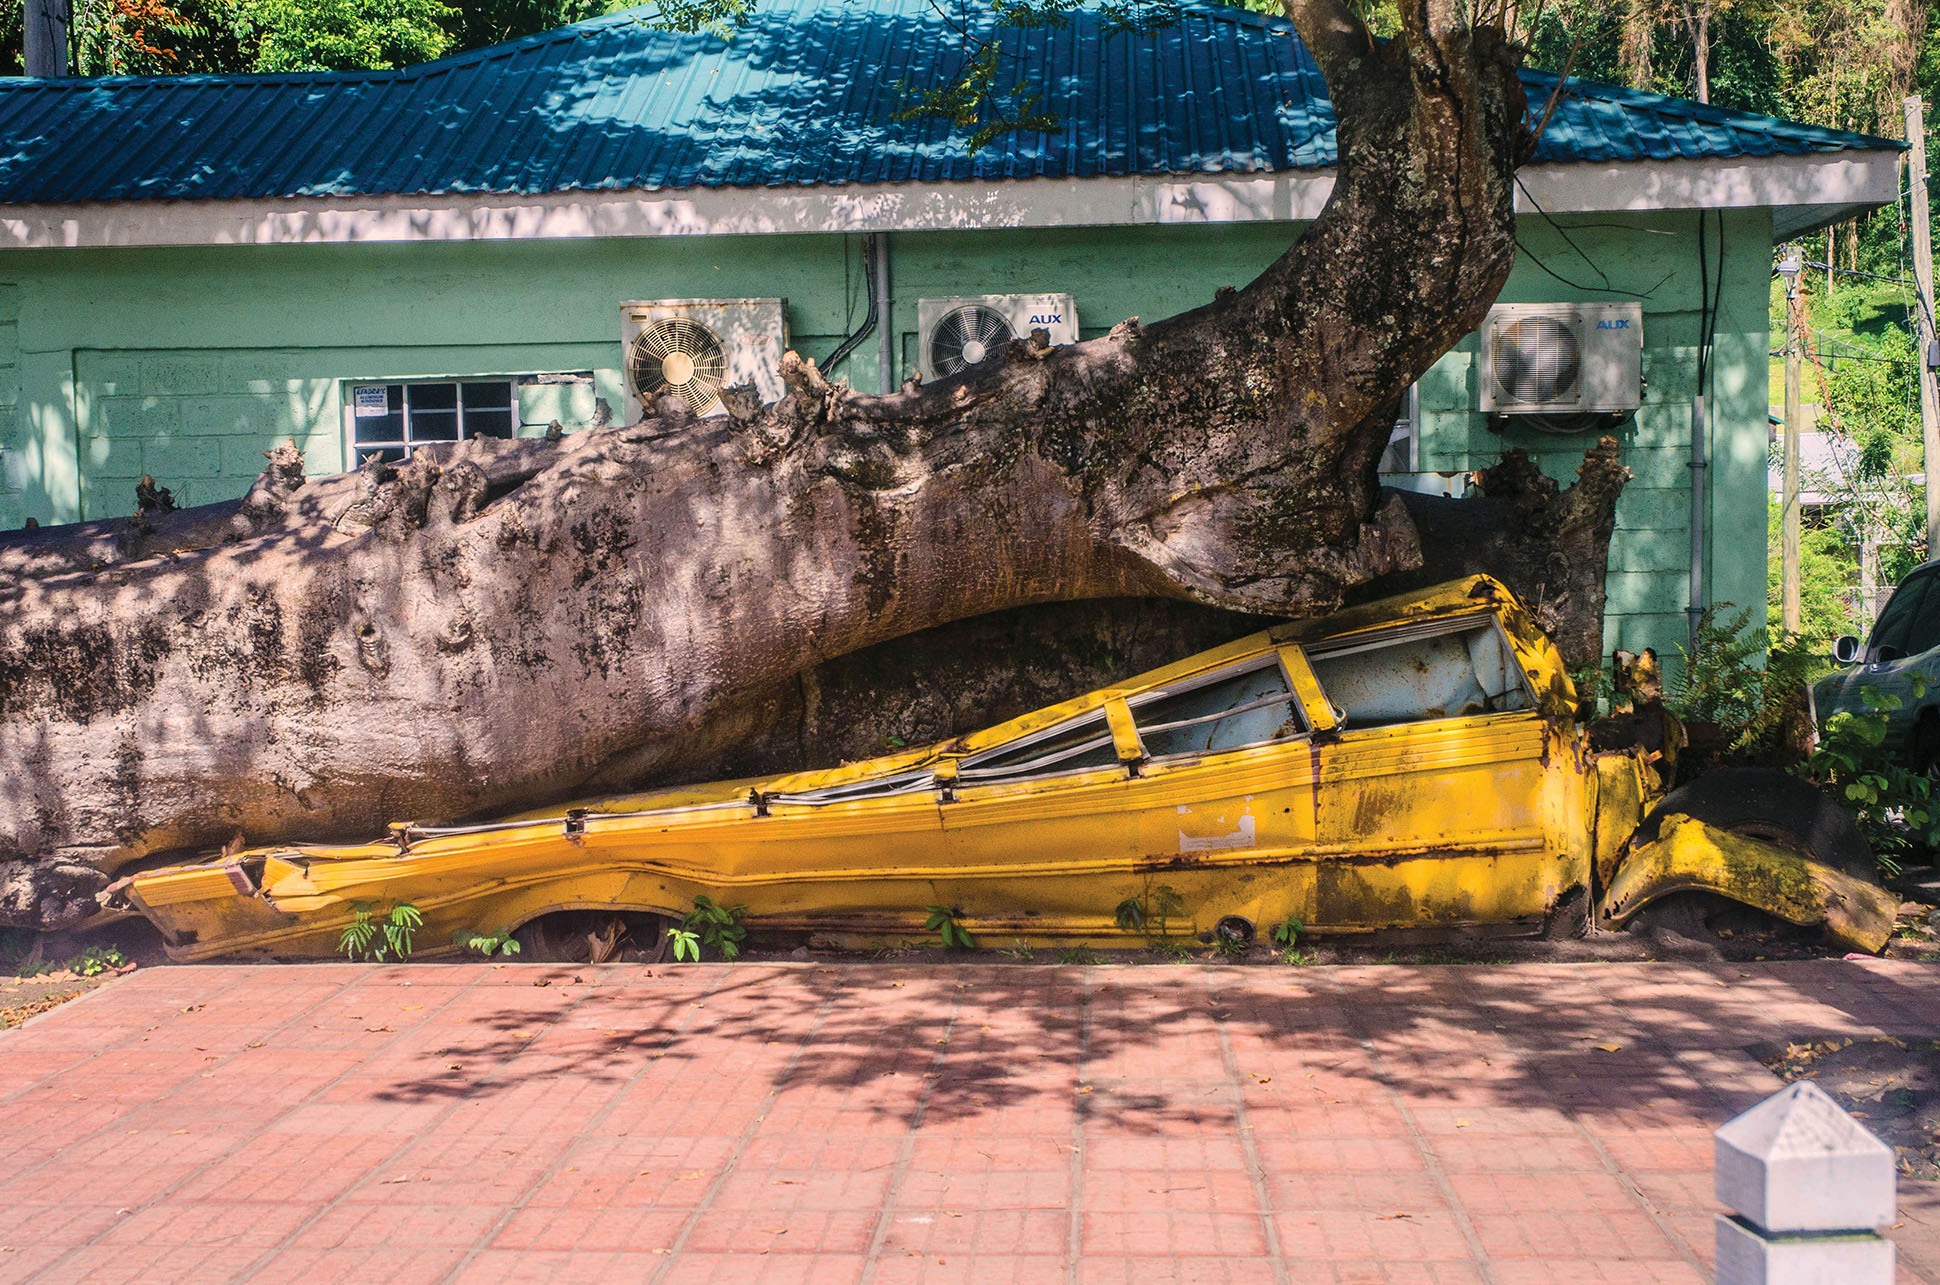 A tree grows through a crushed schoolbus from Hurricane David (1979), which remains as a memorial on the island of Dominica. (Photo by Wayne Hsieh.)